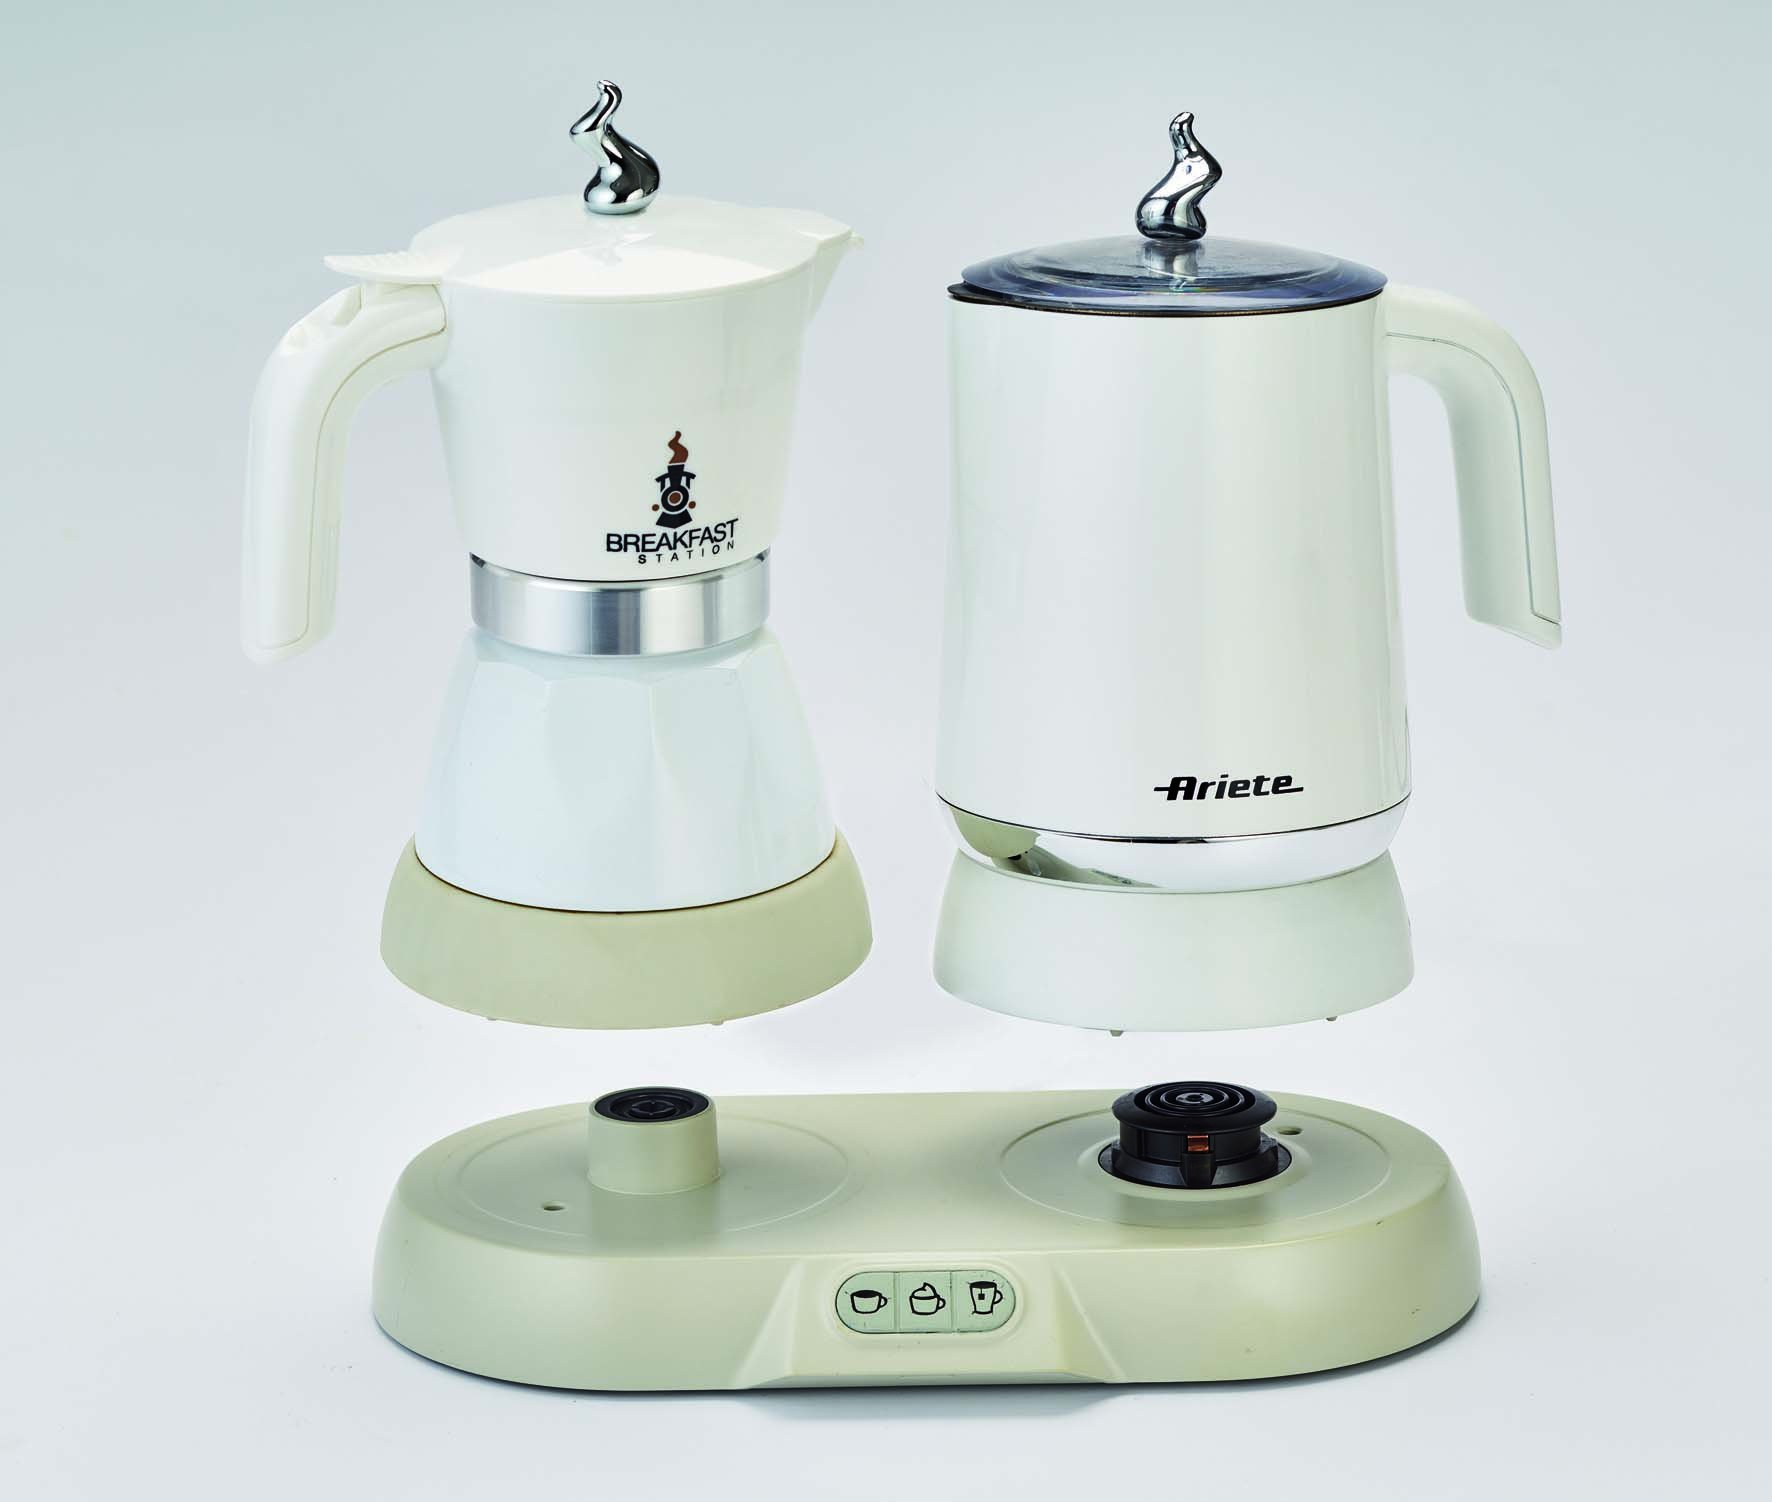 Ariete 1344 Independiente - Cafetera (Independiente, Cafetera moka eléctrica, 0,25 L, 500 W, Blanco): Amazon.es: Hogar